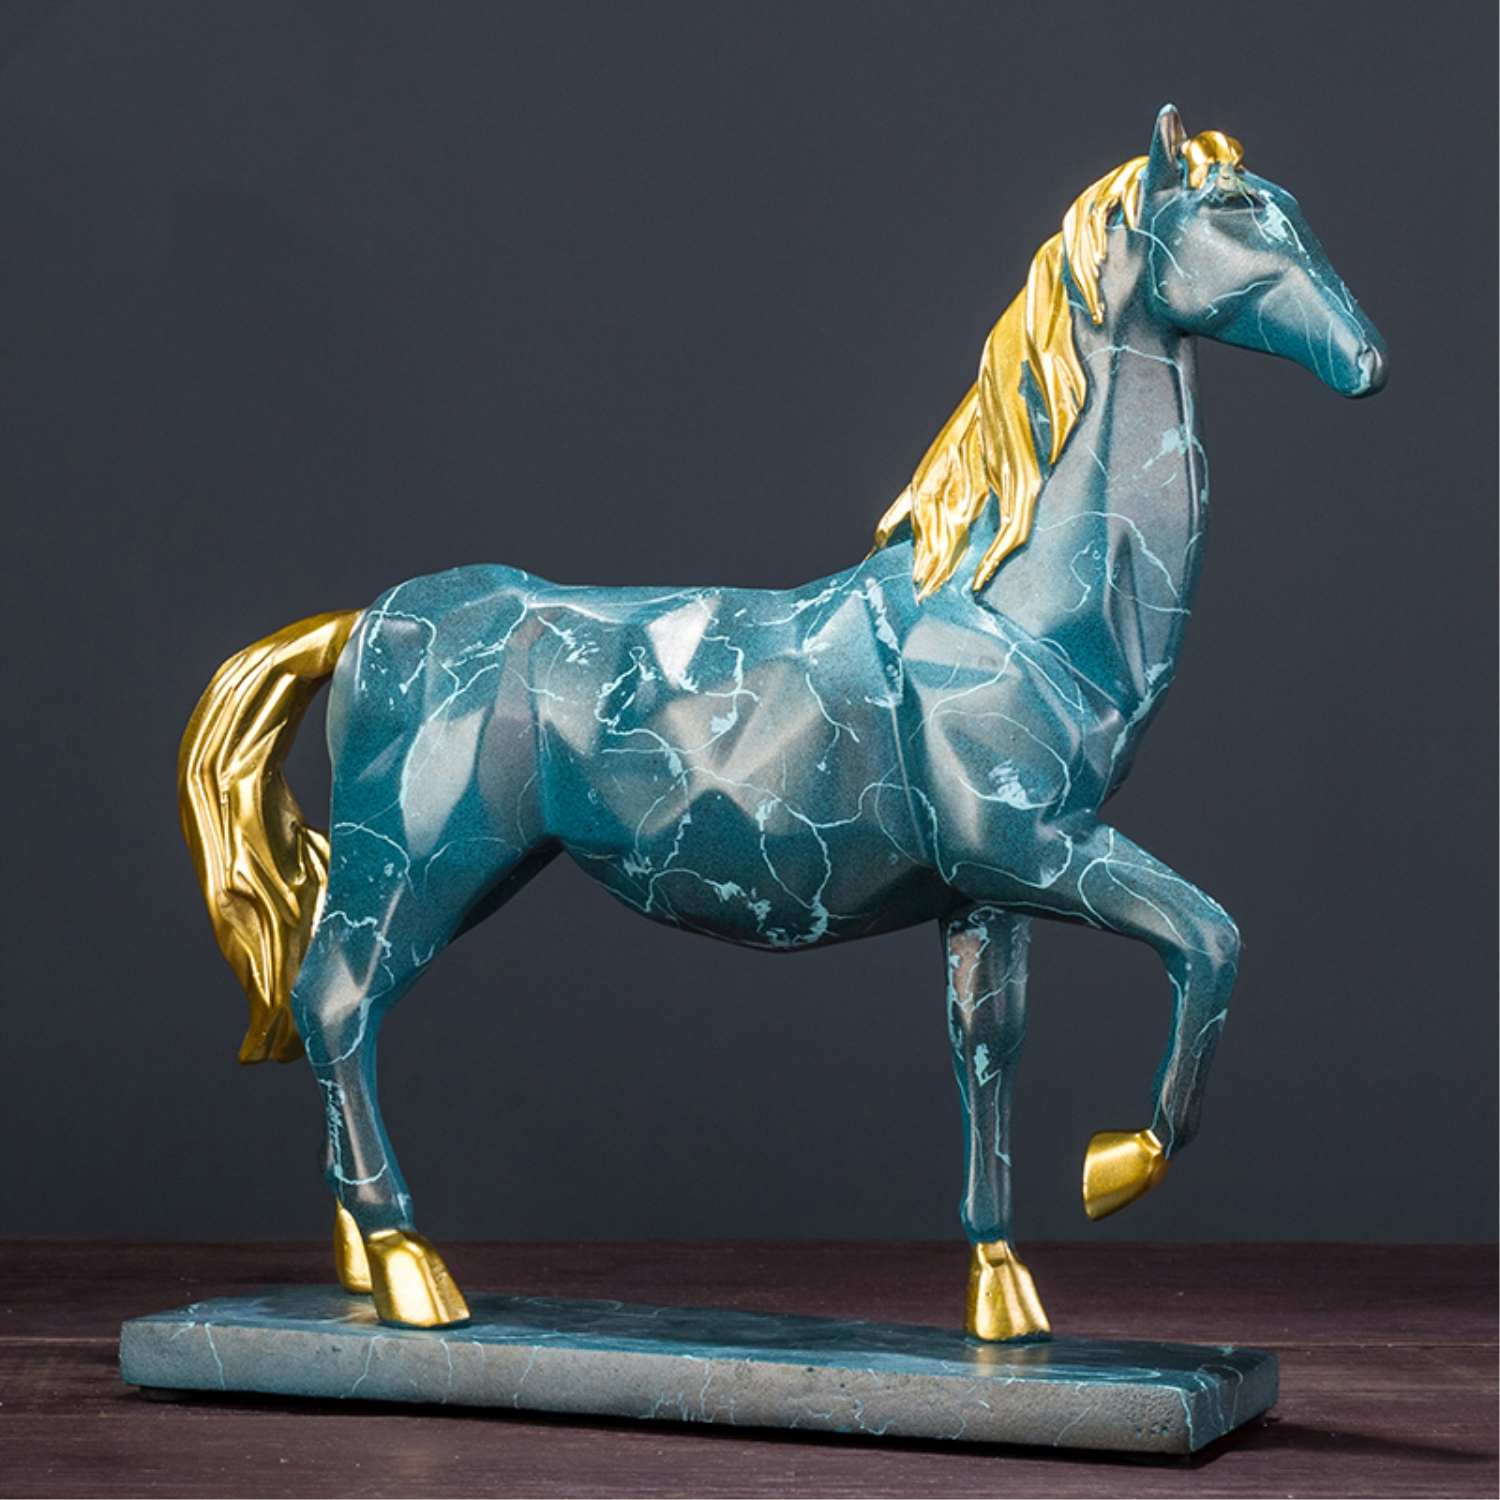 Nordic Creativity Horse Statue Home Office Decoration Hourse Sculpture Crafts Indoor Furnishing ArticlesNordic Creativity Horse Statue Home Office Decoration Hourse Sculpture Crafts Indoor Furnishing Articles